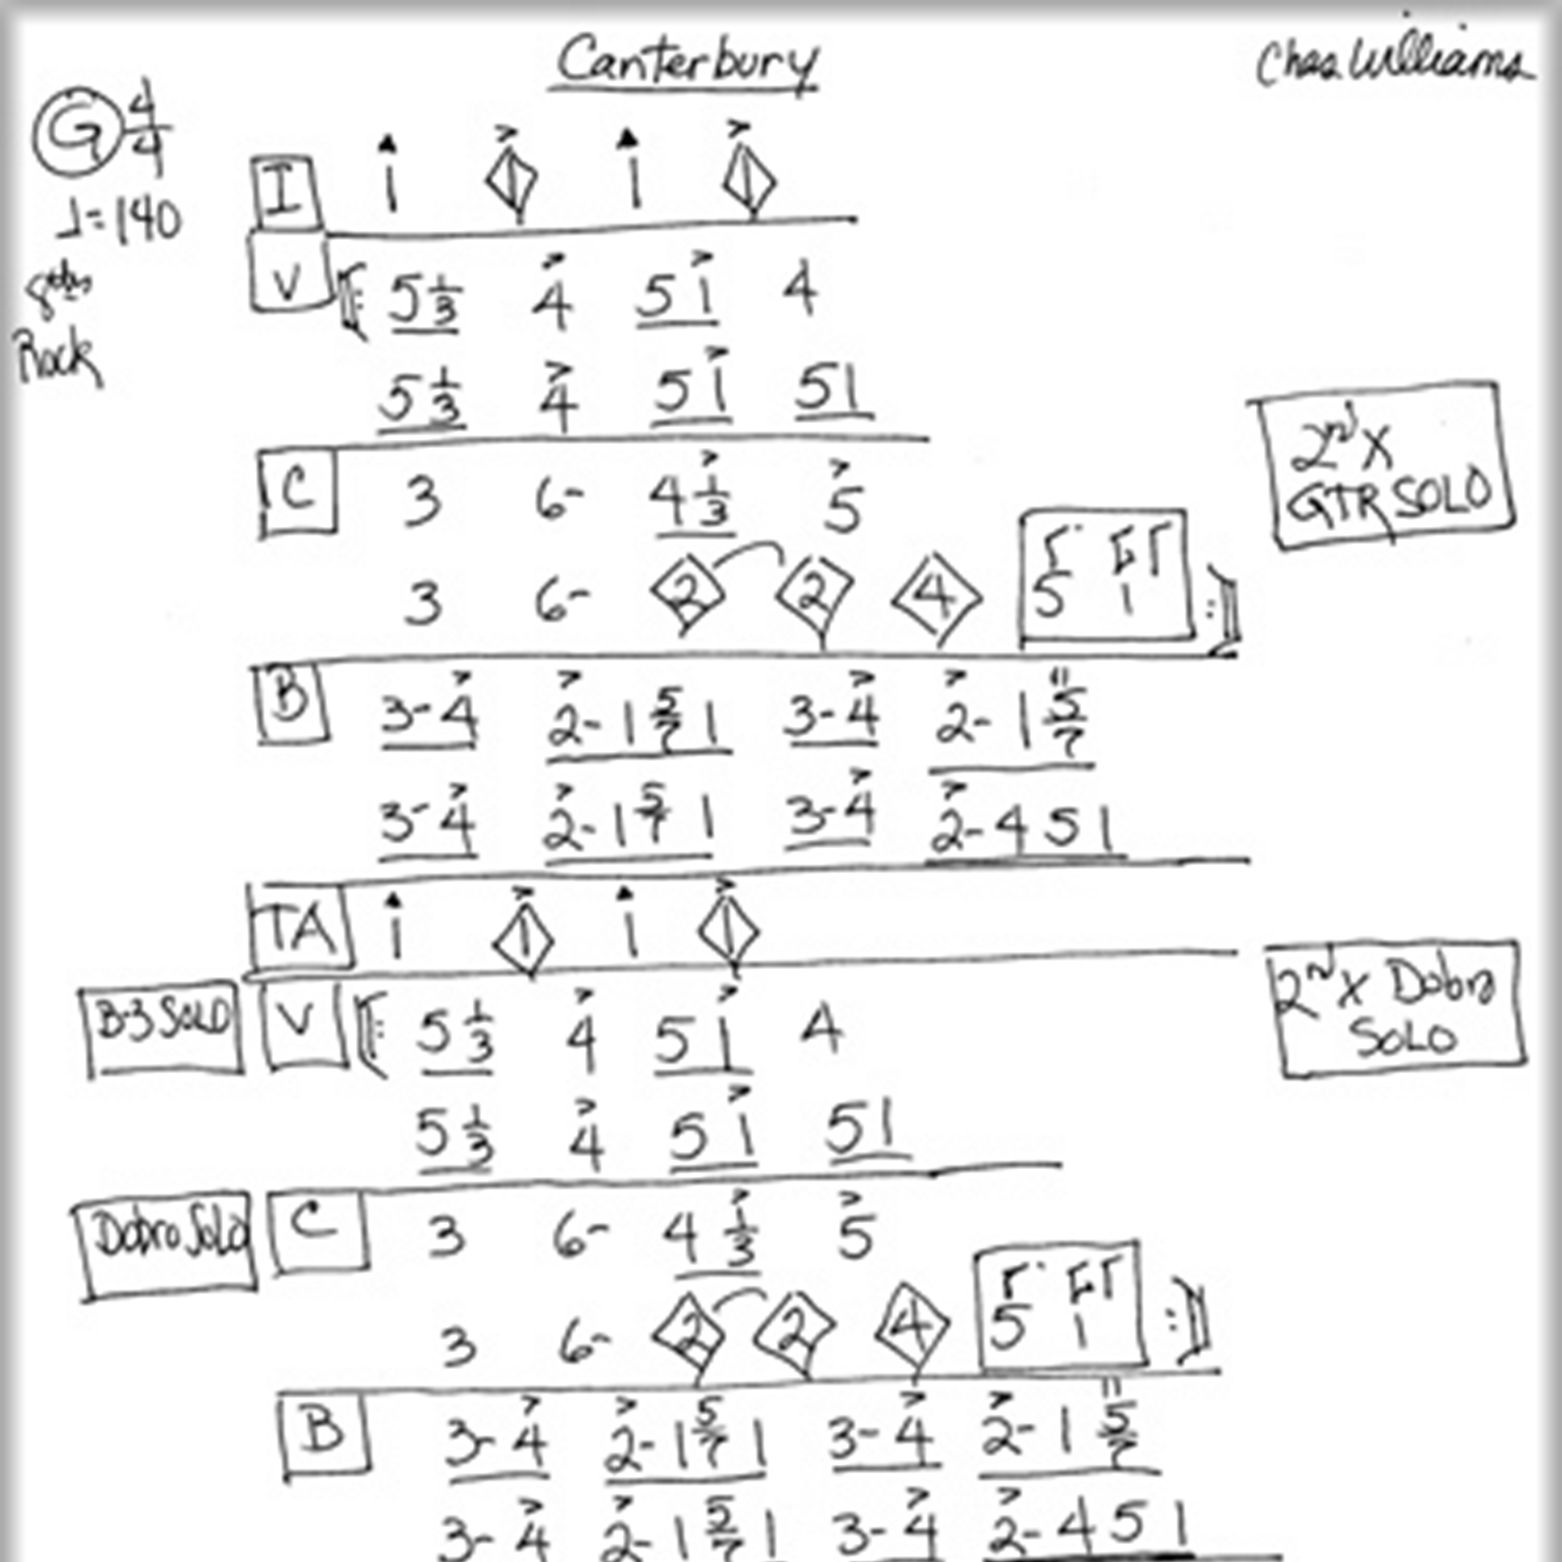 Crunching The Nashville Number System Harmony Central Number System Piano Chords Chart Learn Music